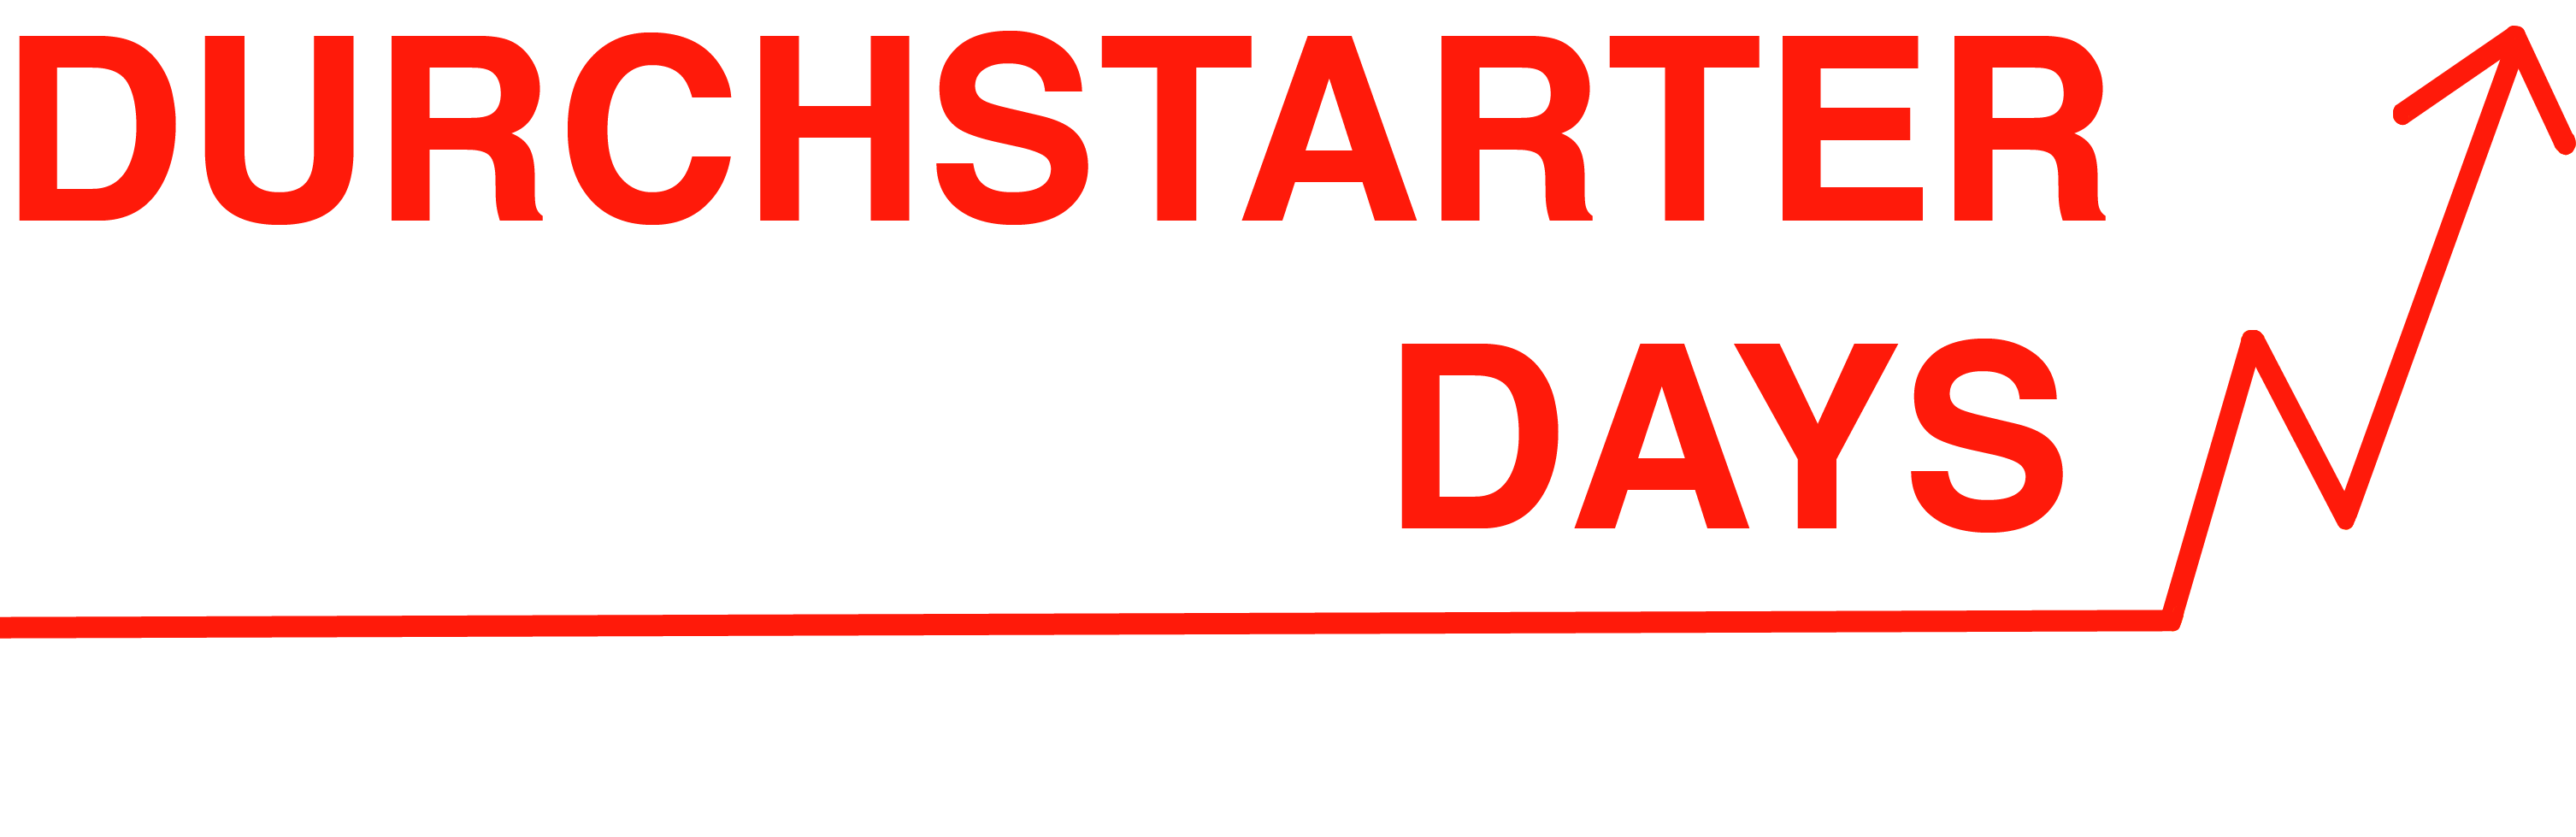 Durchstarter-Business-Days